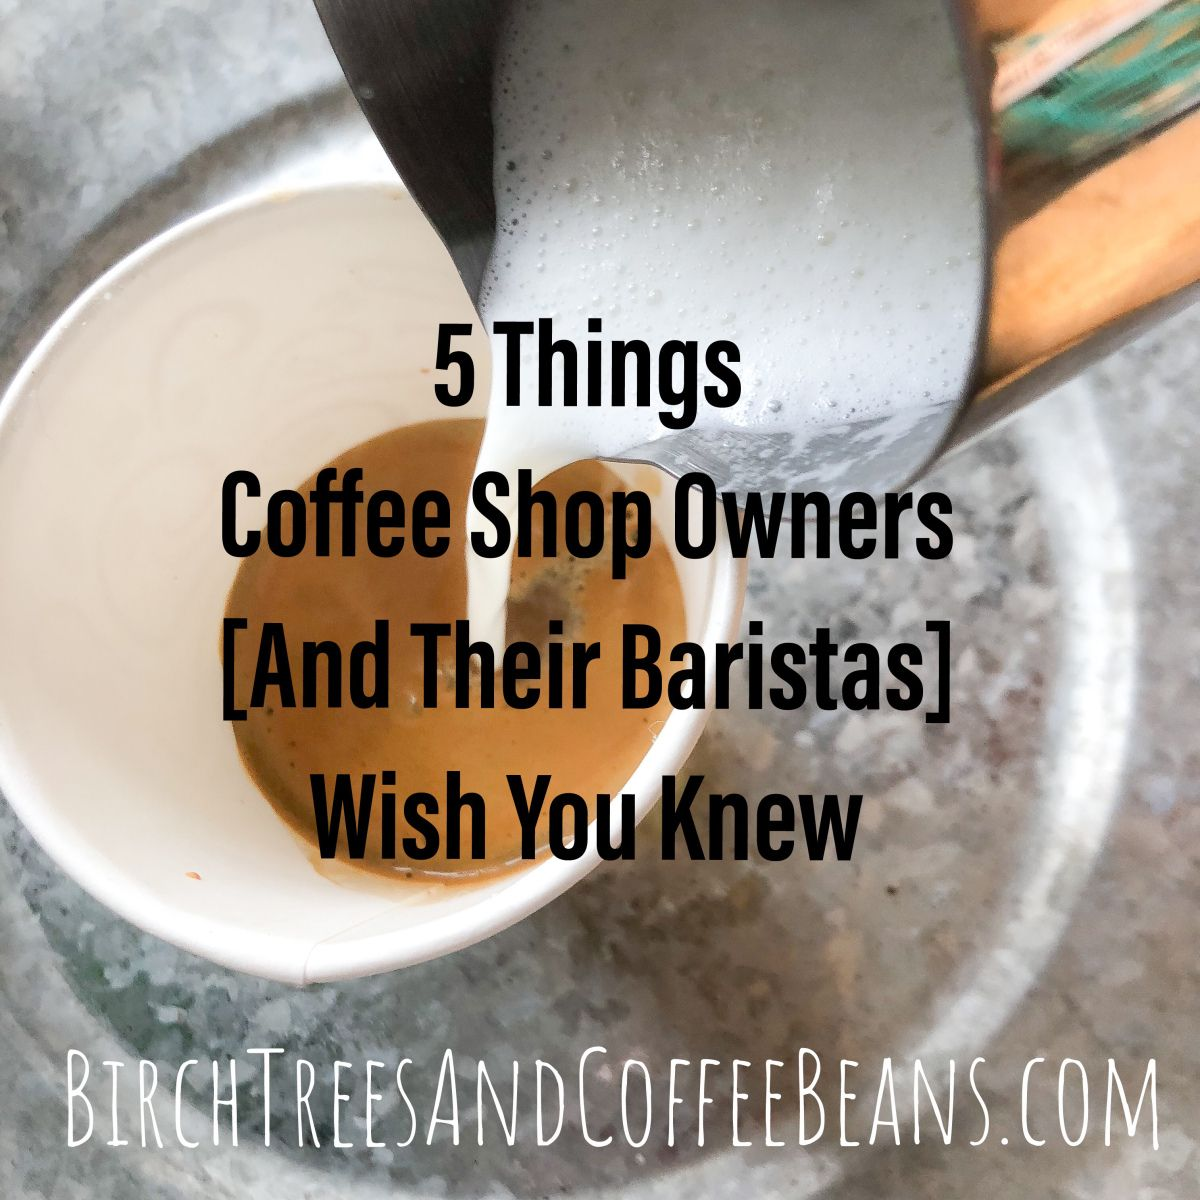 5 Things Coffee Shop Owners and Baristas Wish You Knew